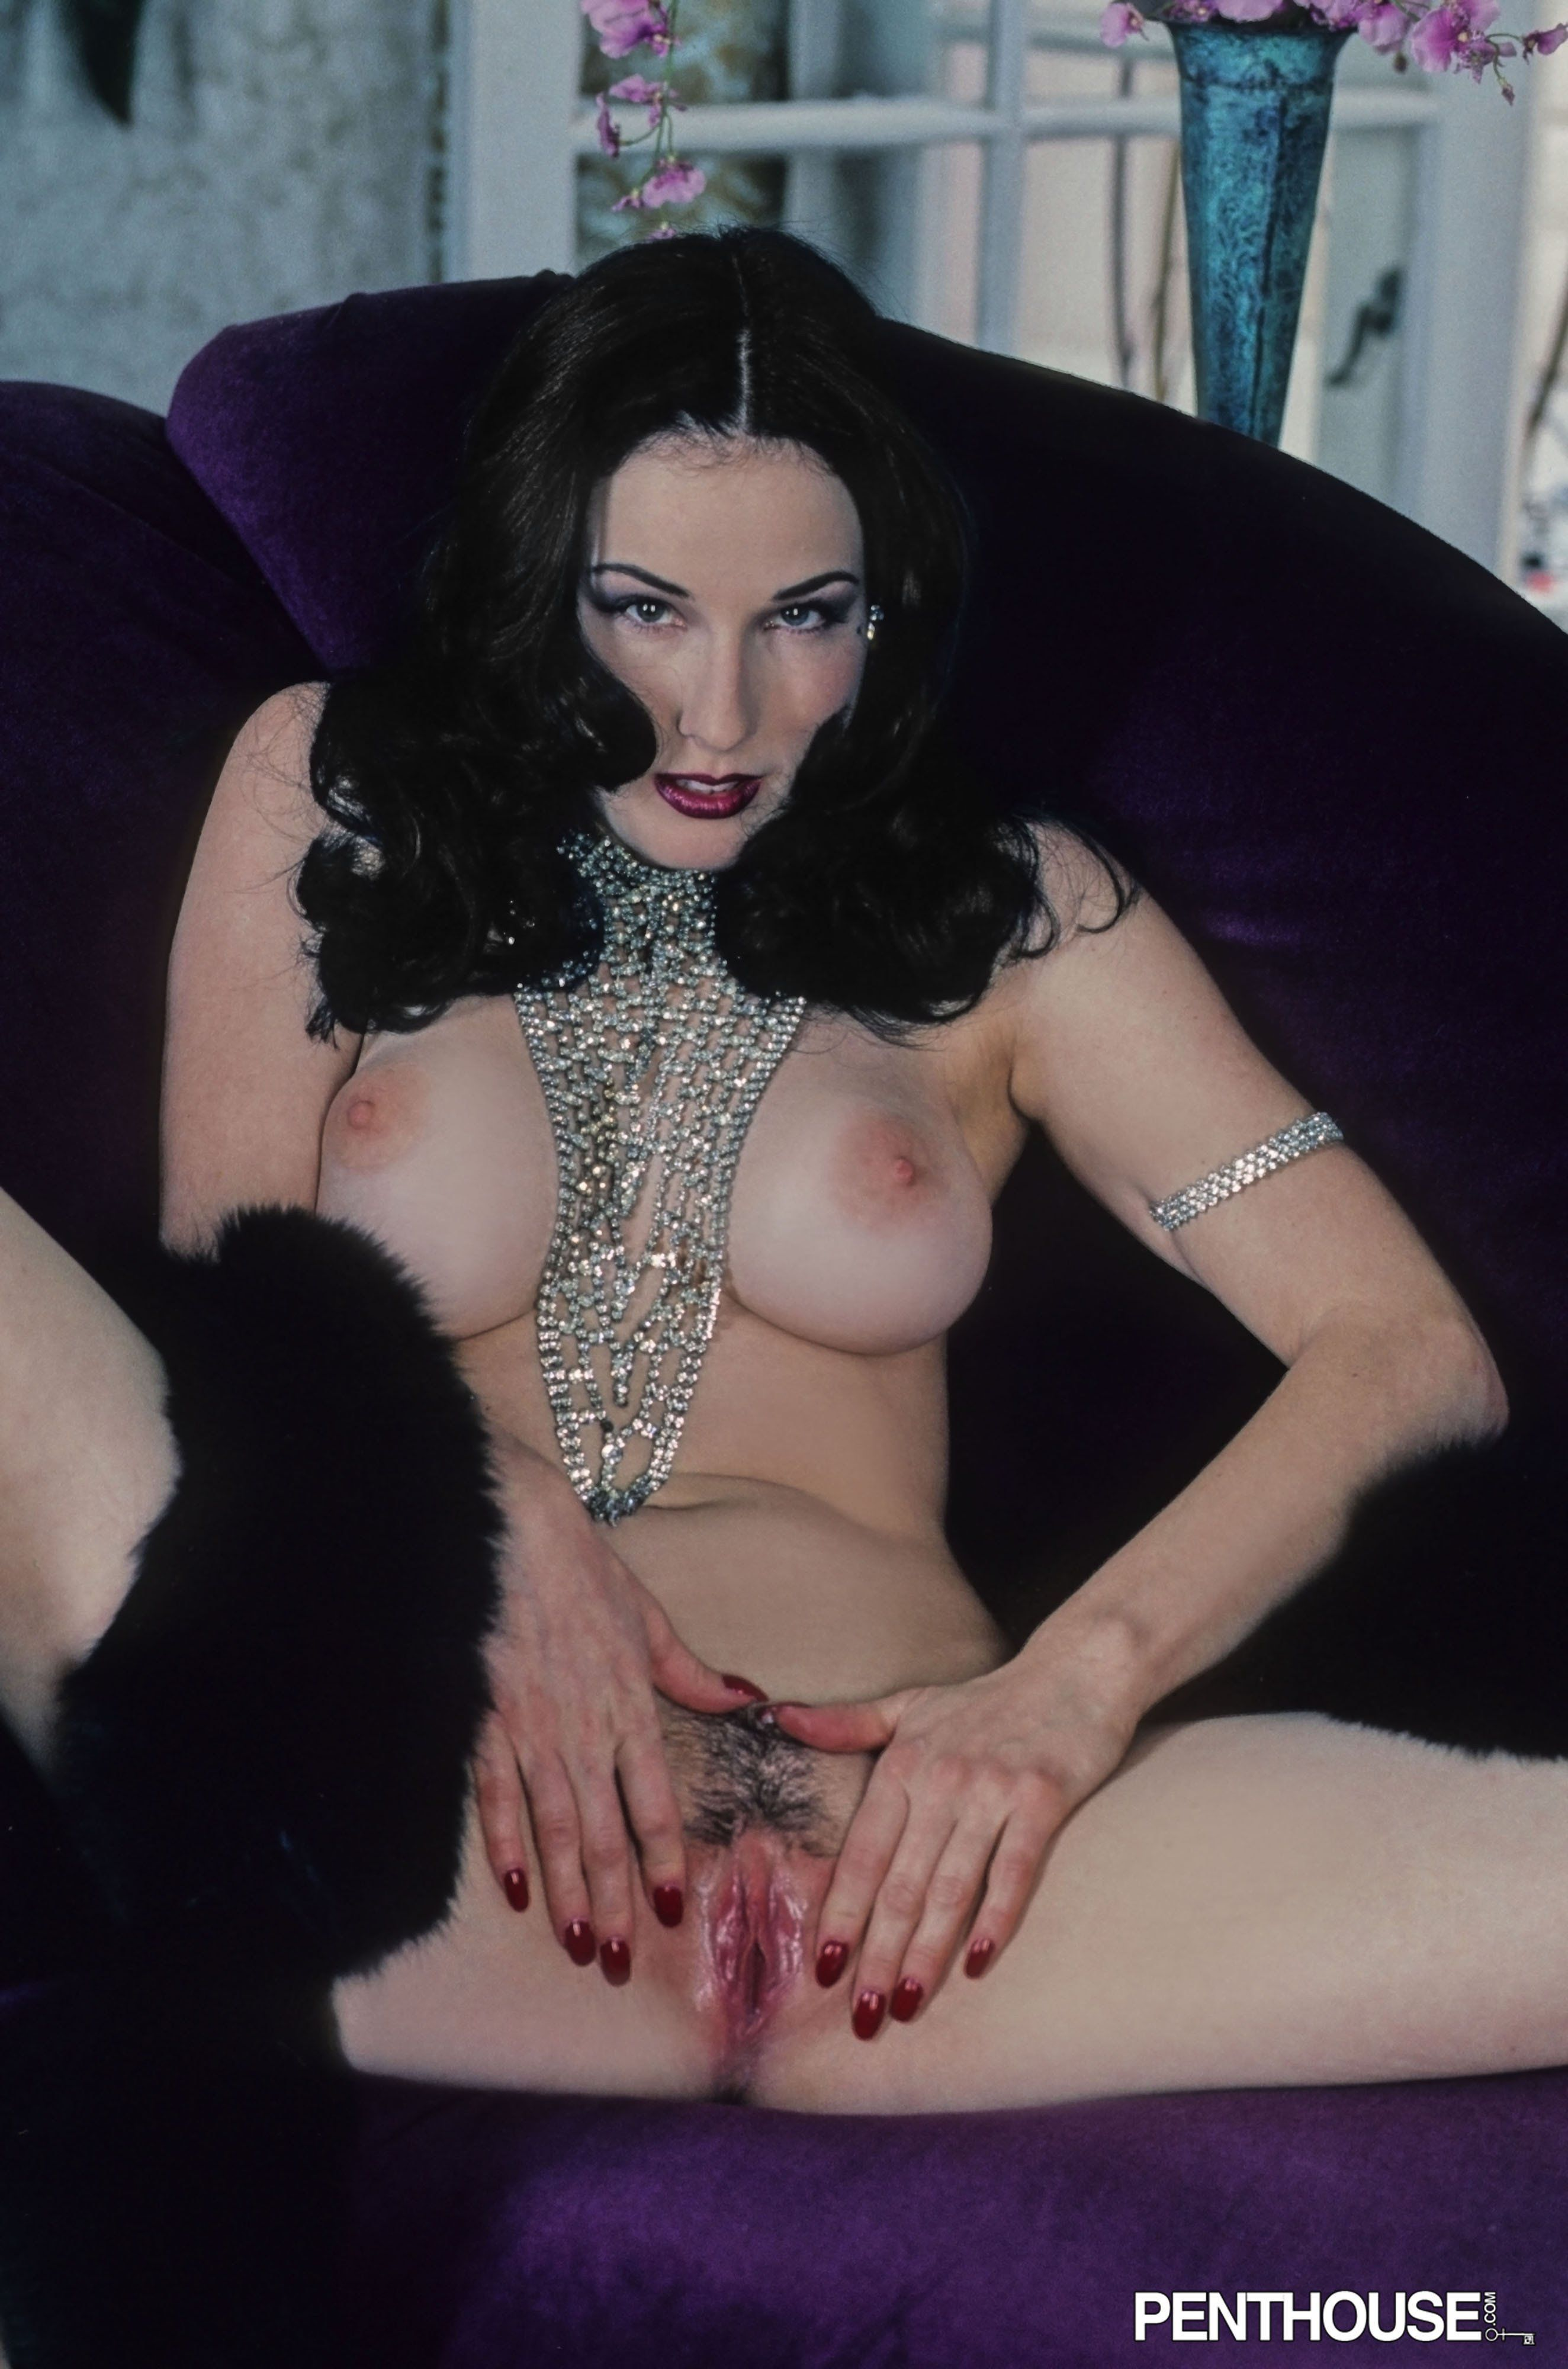 Dita von teese completely naked naked photo